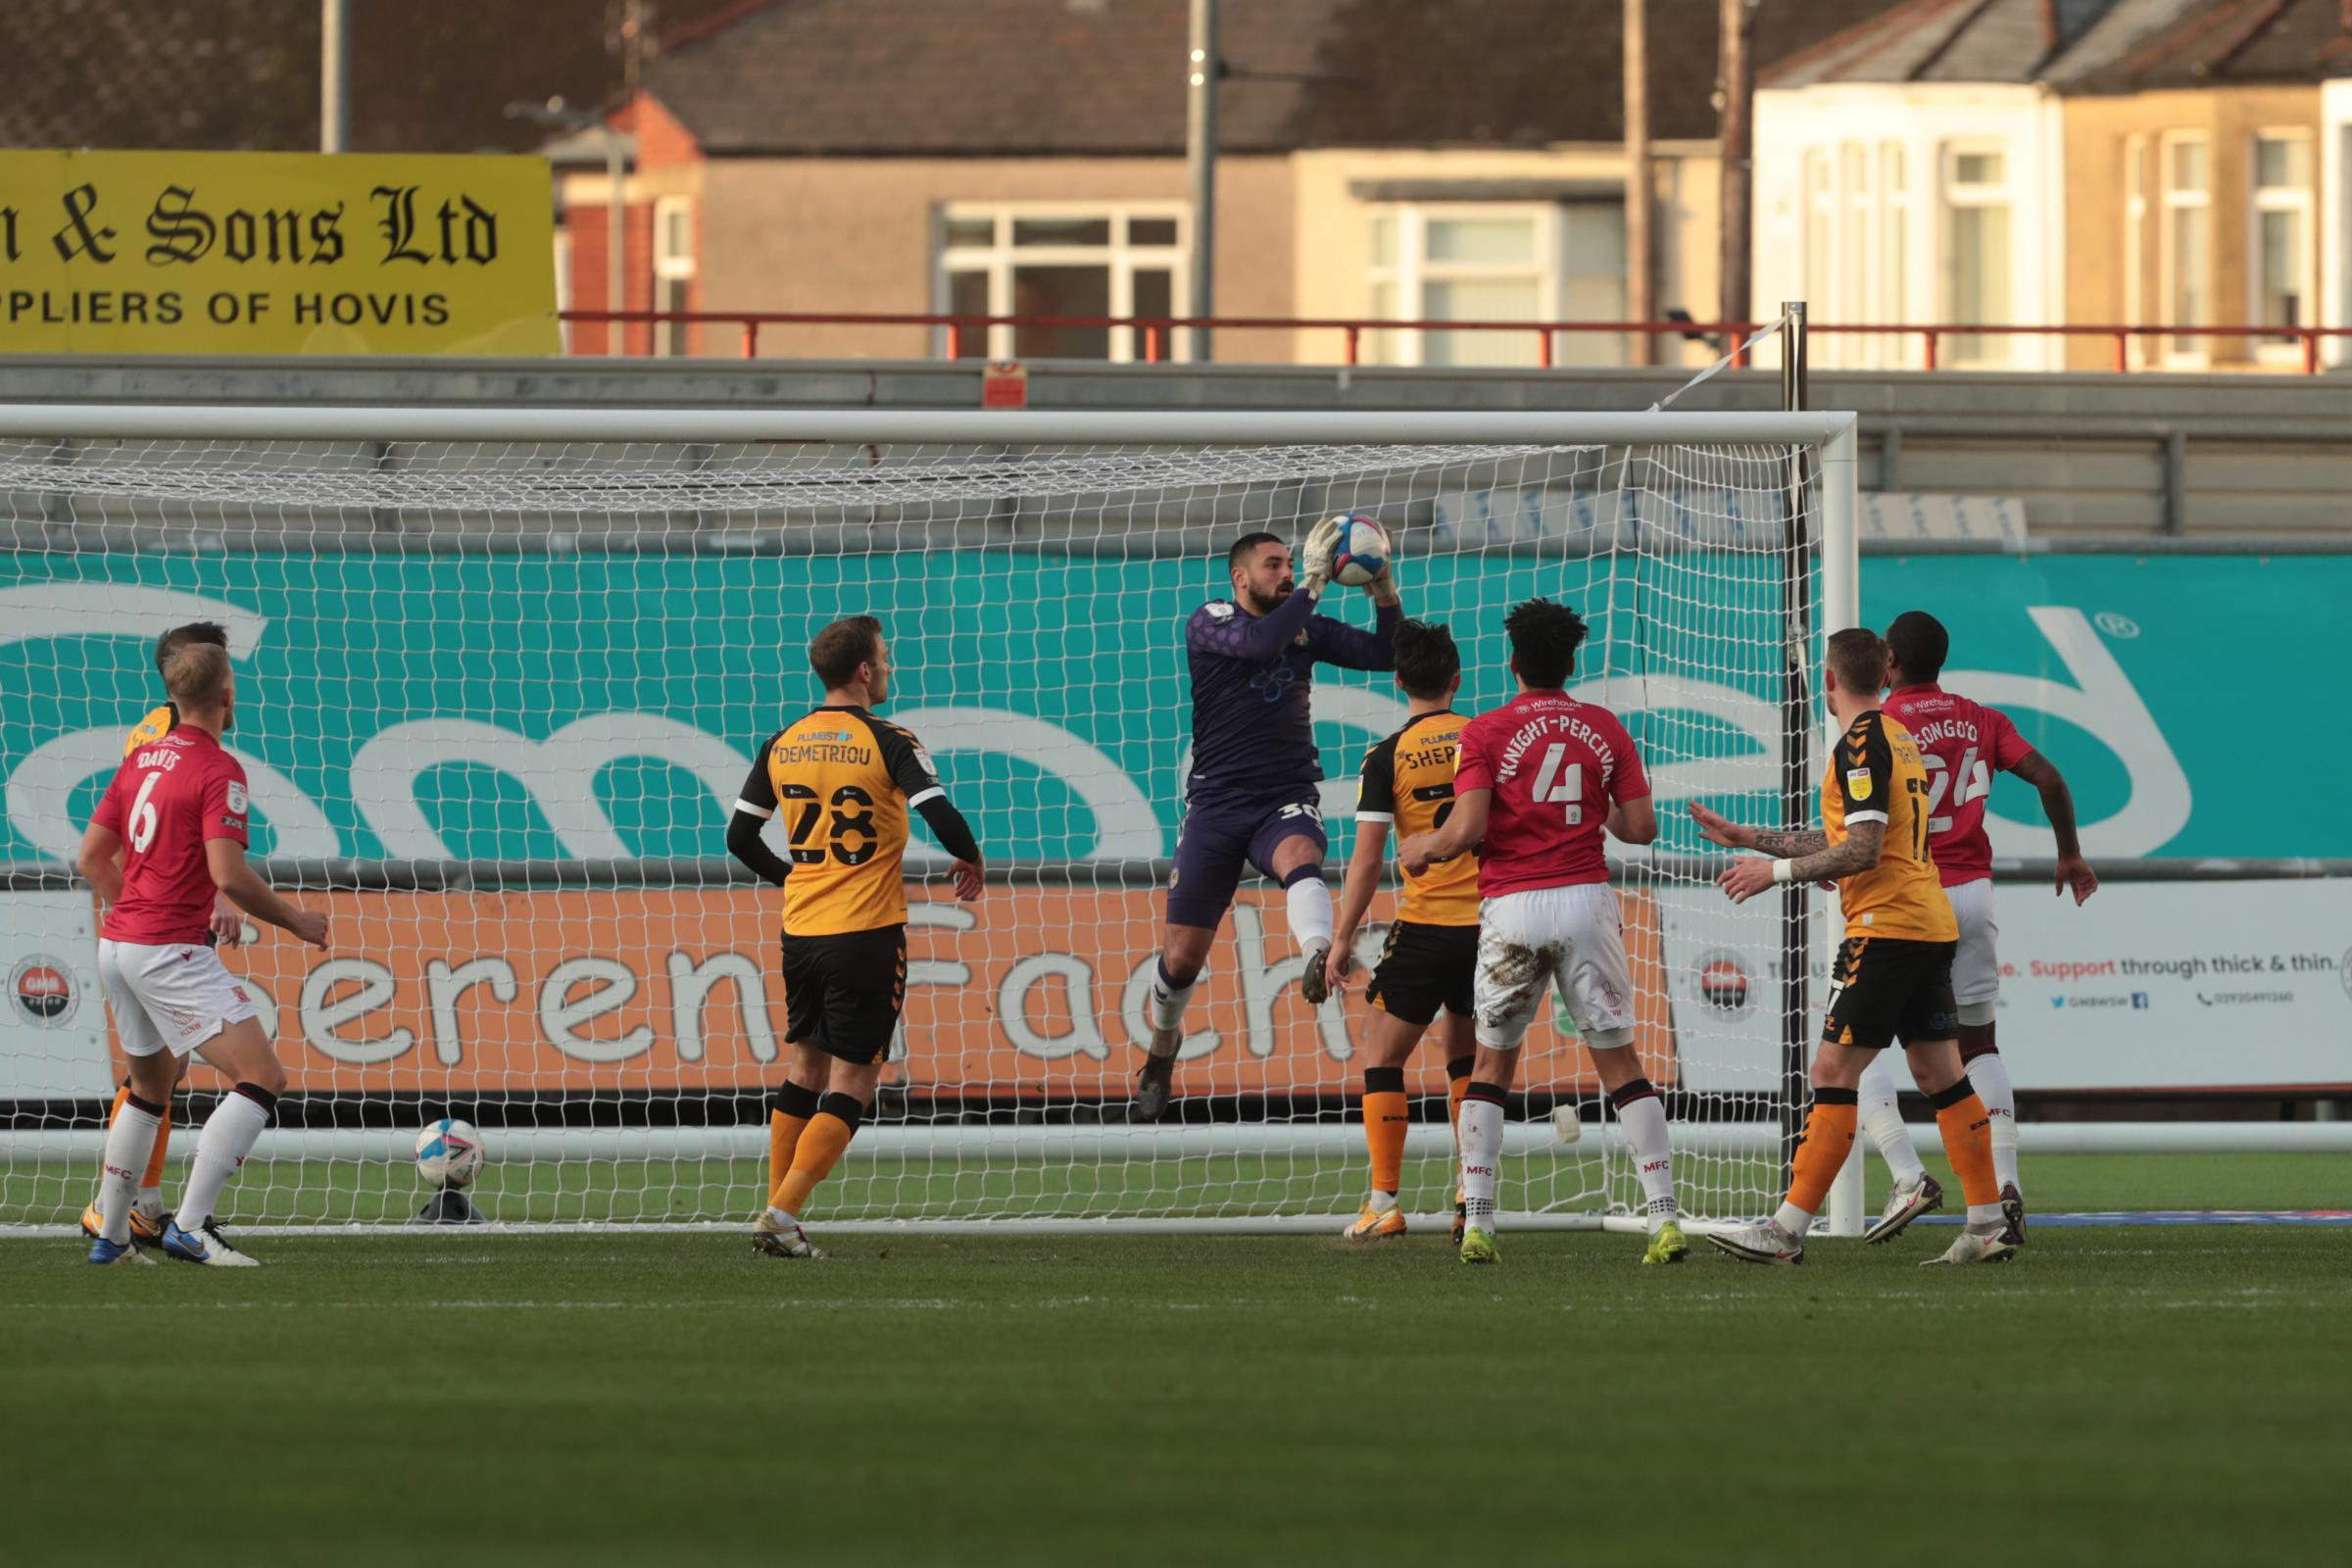 05.12.20 - Newport County v Morecambe - Sky Bet League 2 - Nick Townsend of Newport County saves from a Yann Songoo of Morecambe header